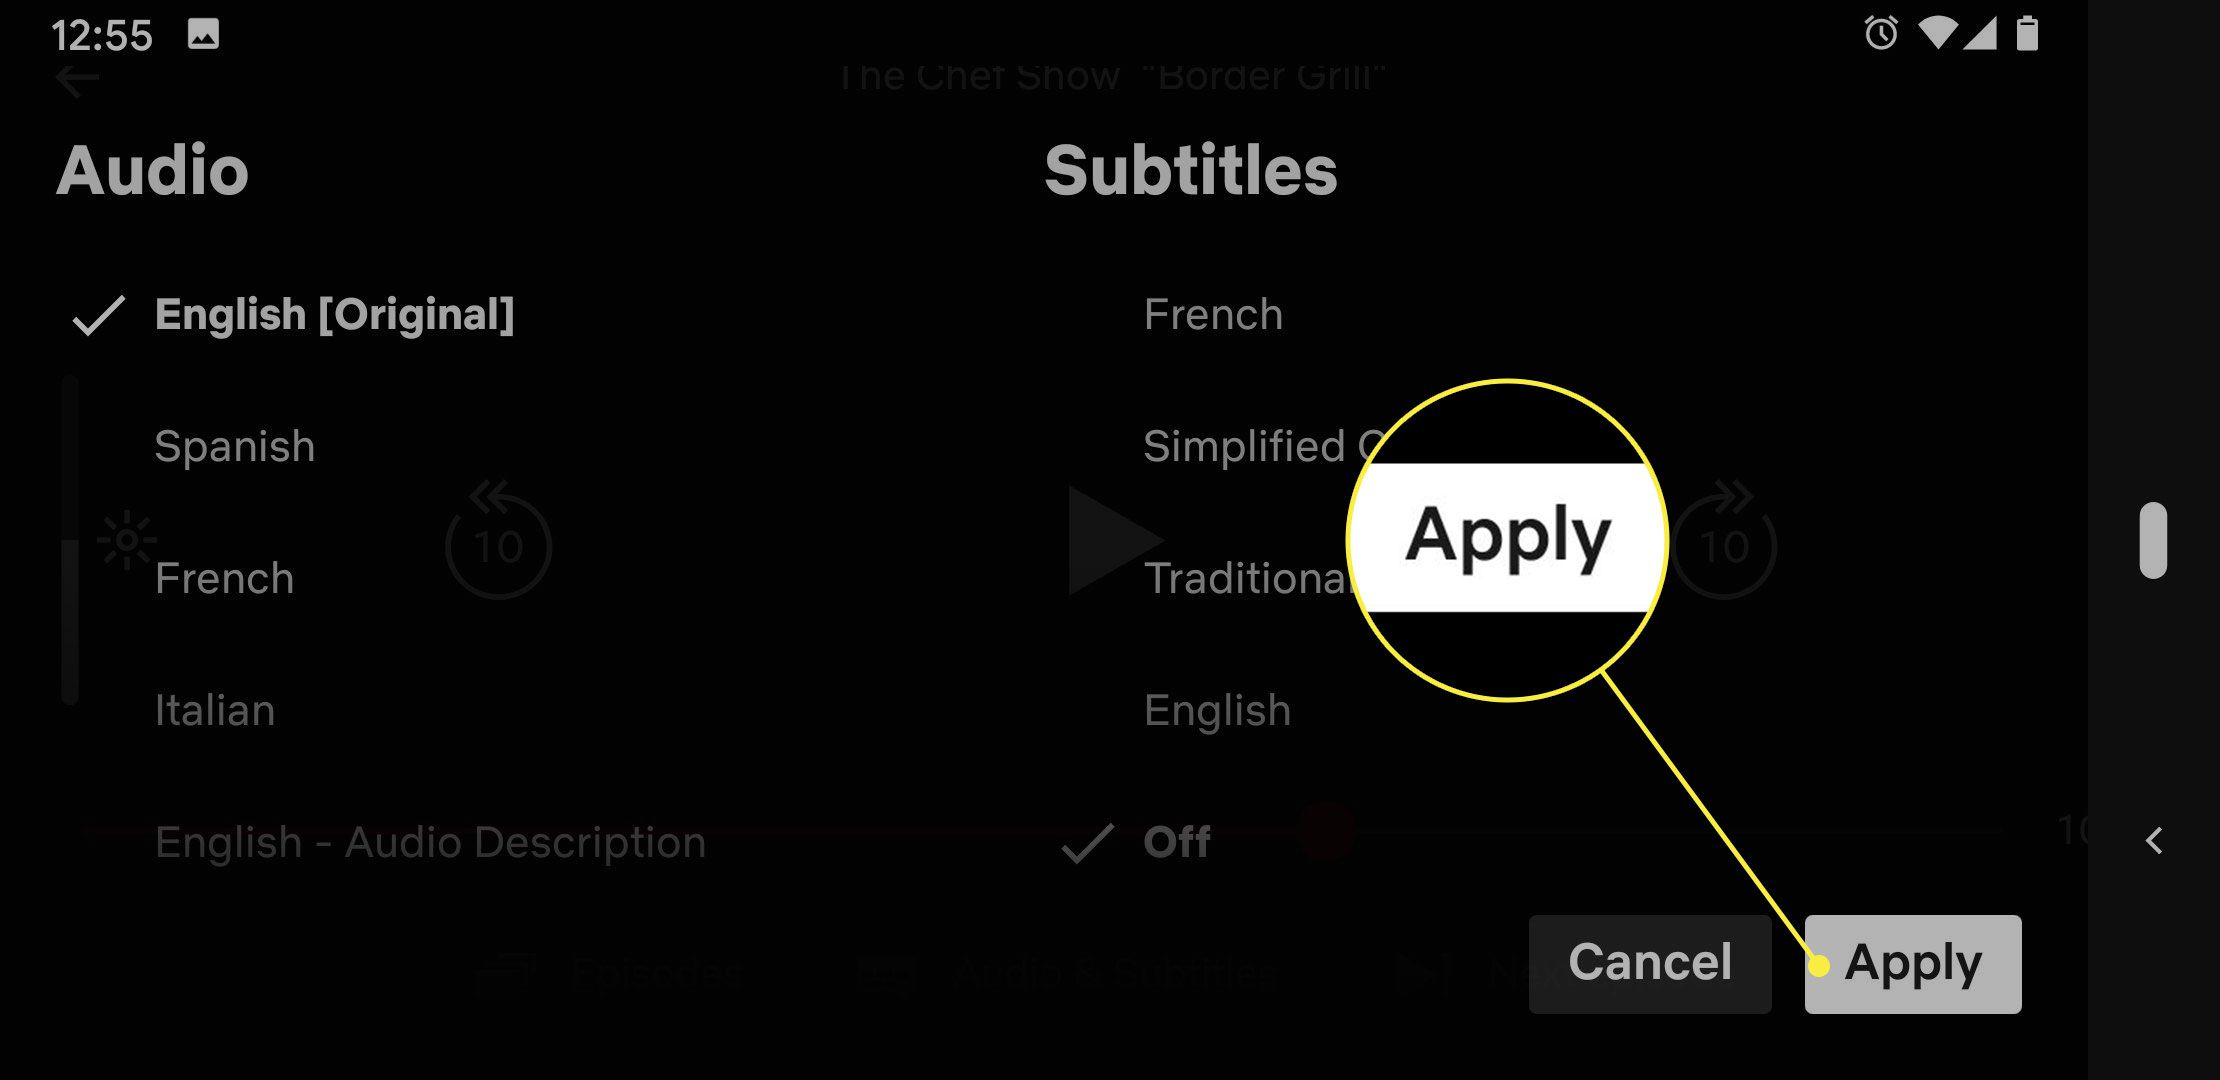 A screenshot of the Audio & Subtitles settings on Netflix with the Apply button highlighted